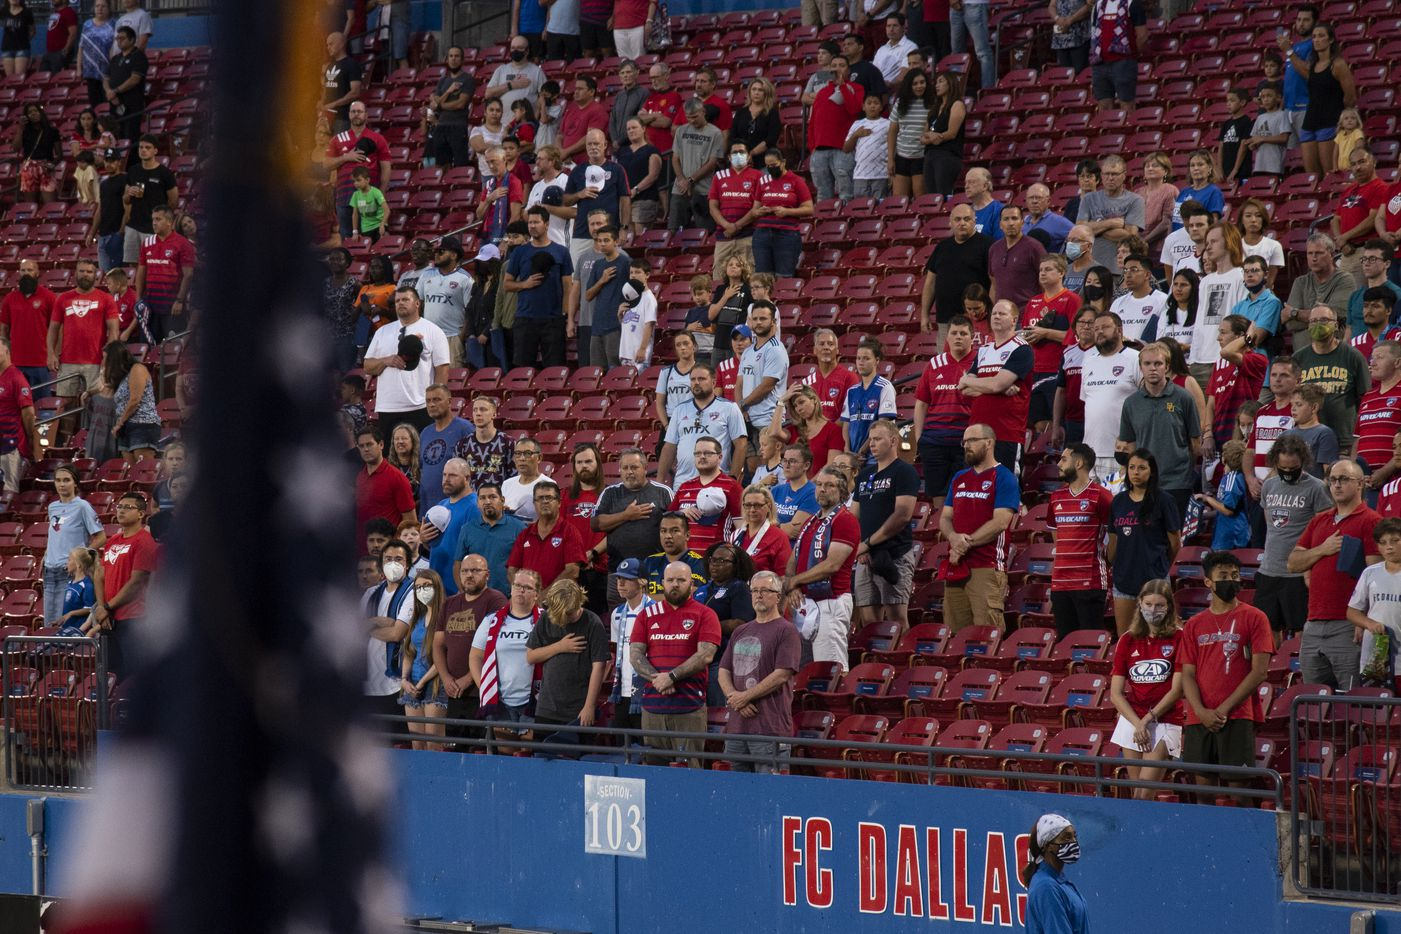 Fans stand for the national anthem prior to the start of FC DallasÕ home game against the San Jose Earthquakes at Toyota Stadium in Frisco, Texas on Saturday, September 11, 2021. (Emil Lippe/Special Contributor)